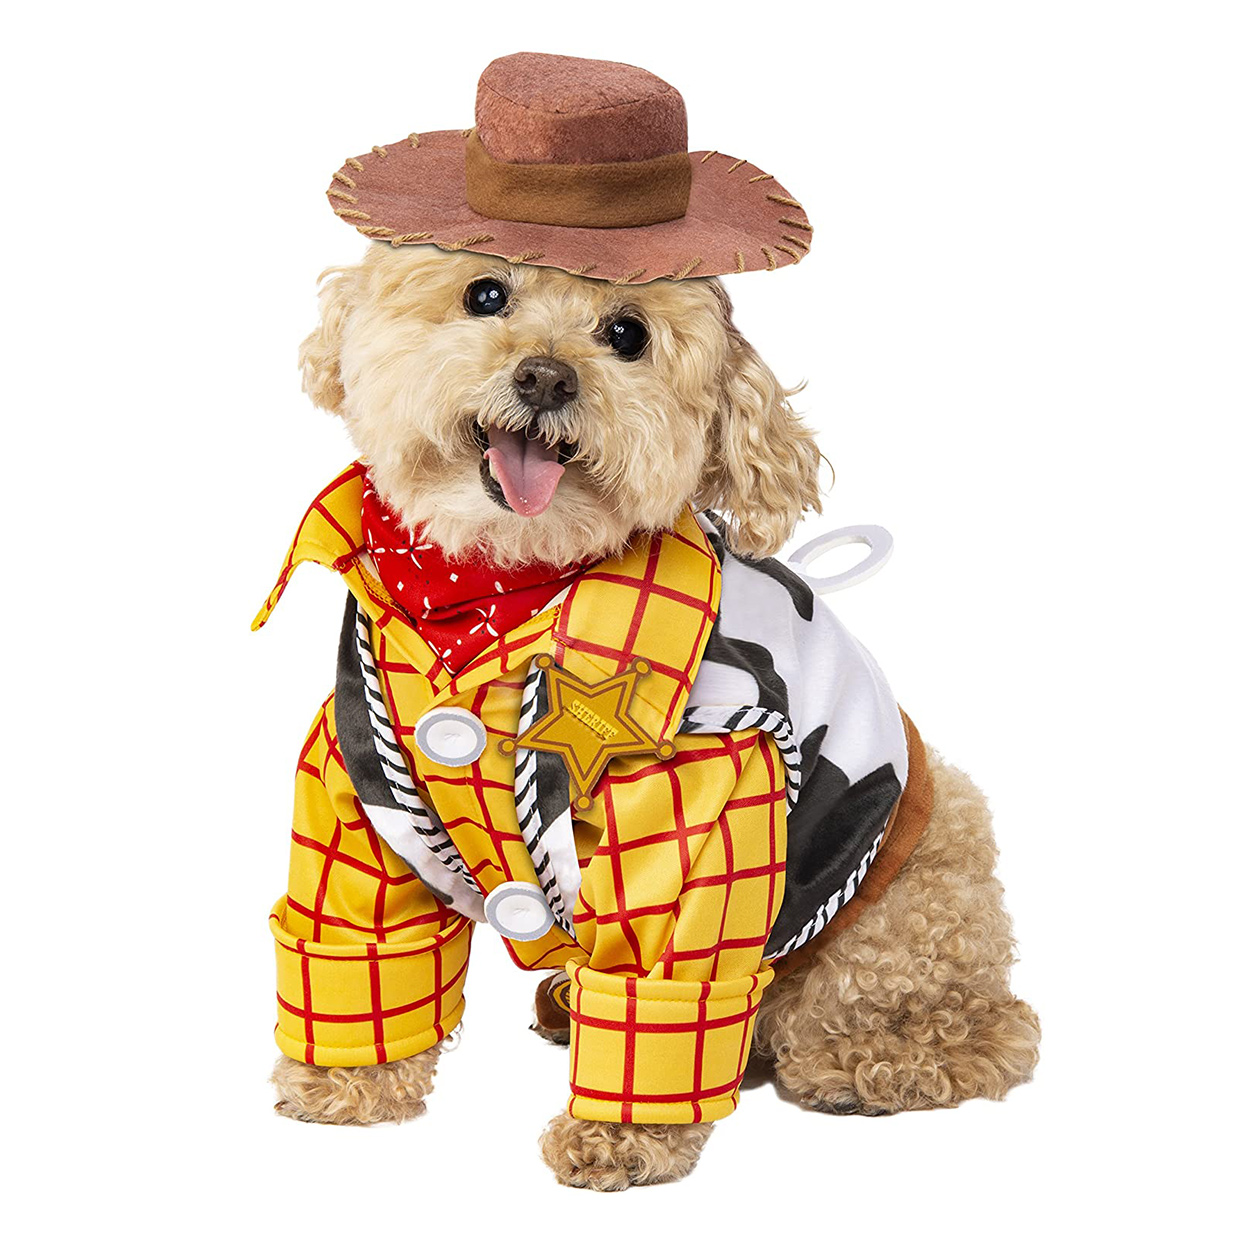 Dog wearing a Rubie's Disney: Toy Story Pet Costume on a white background